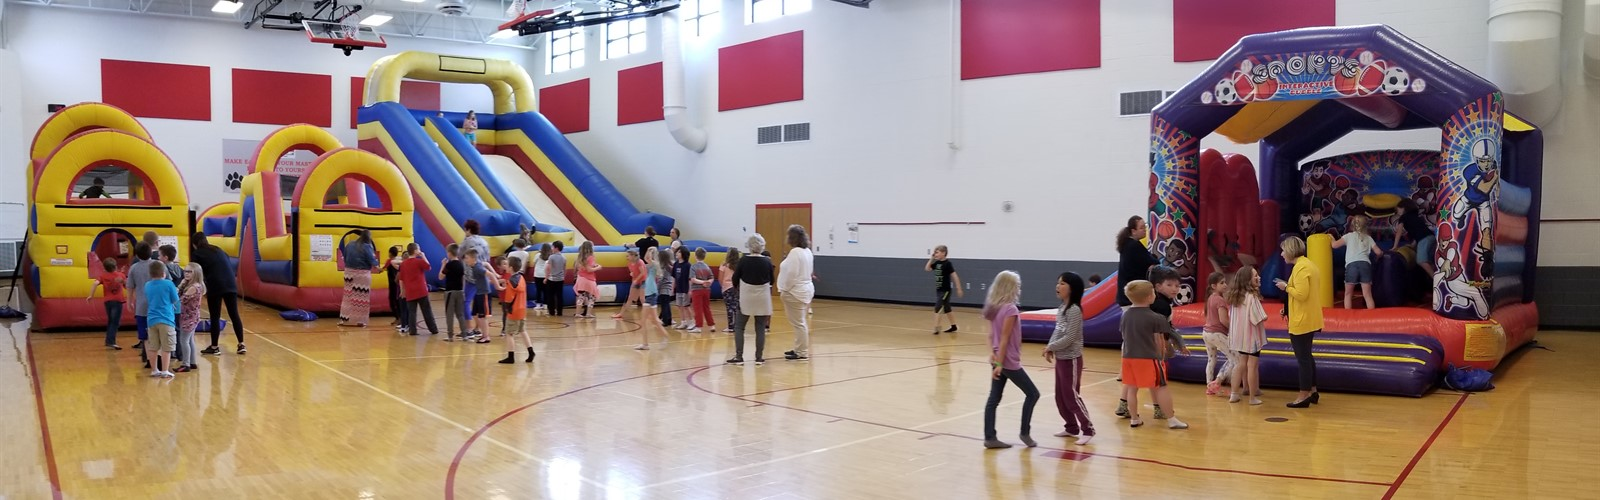 Students playing on inflatables during the Cougar Club carnival